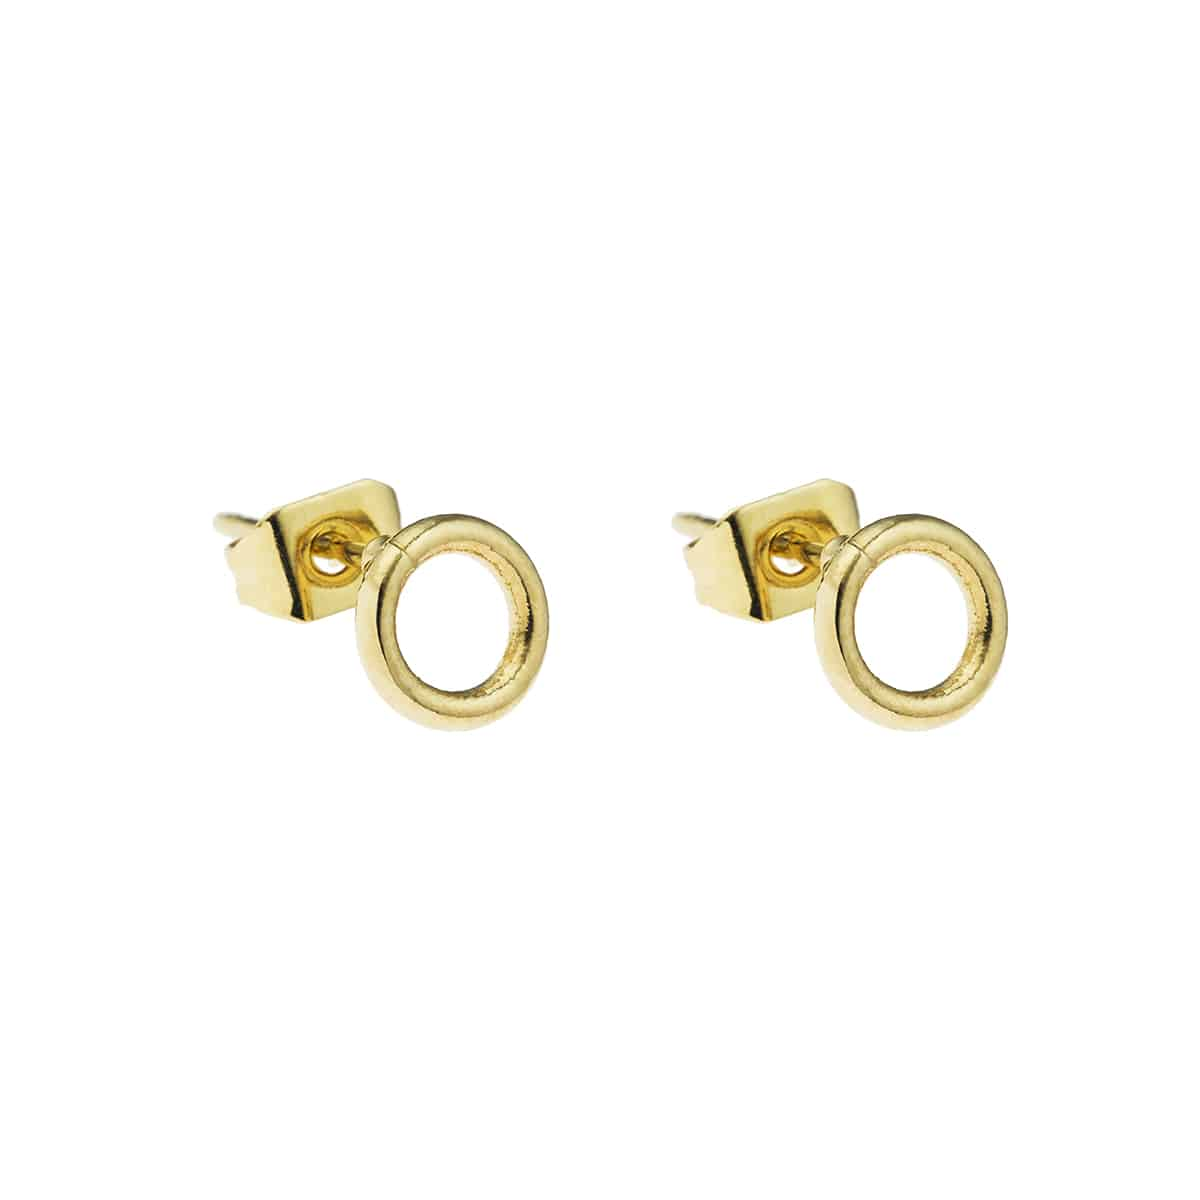 Golden earrings by Coralie de Seynes - L'Erudite Concept Store